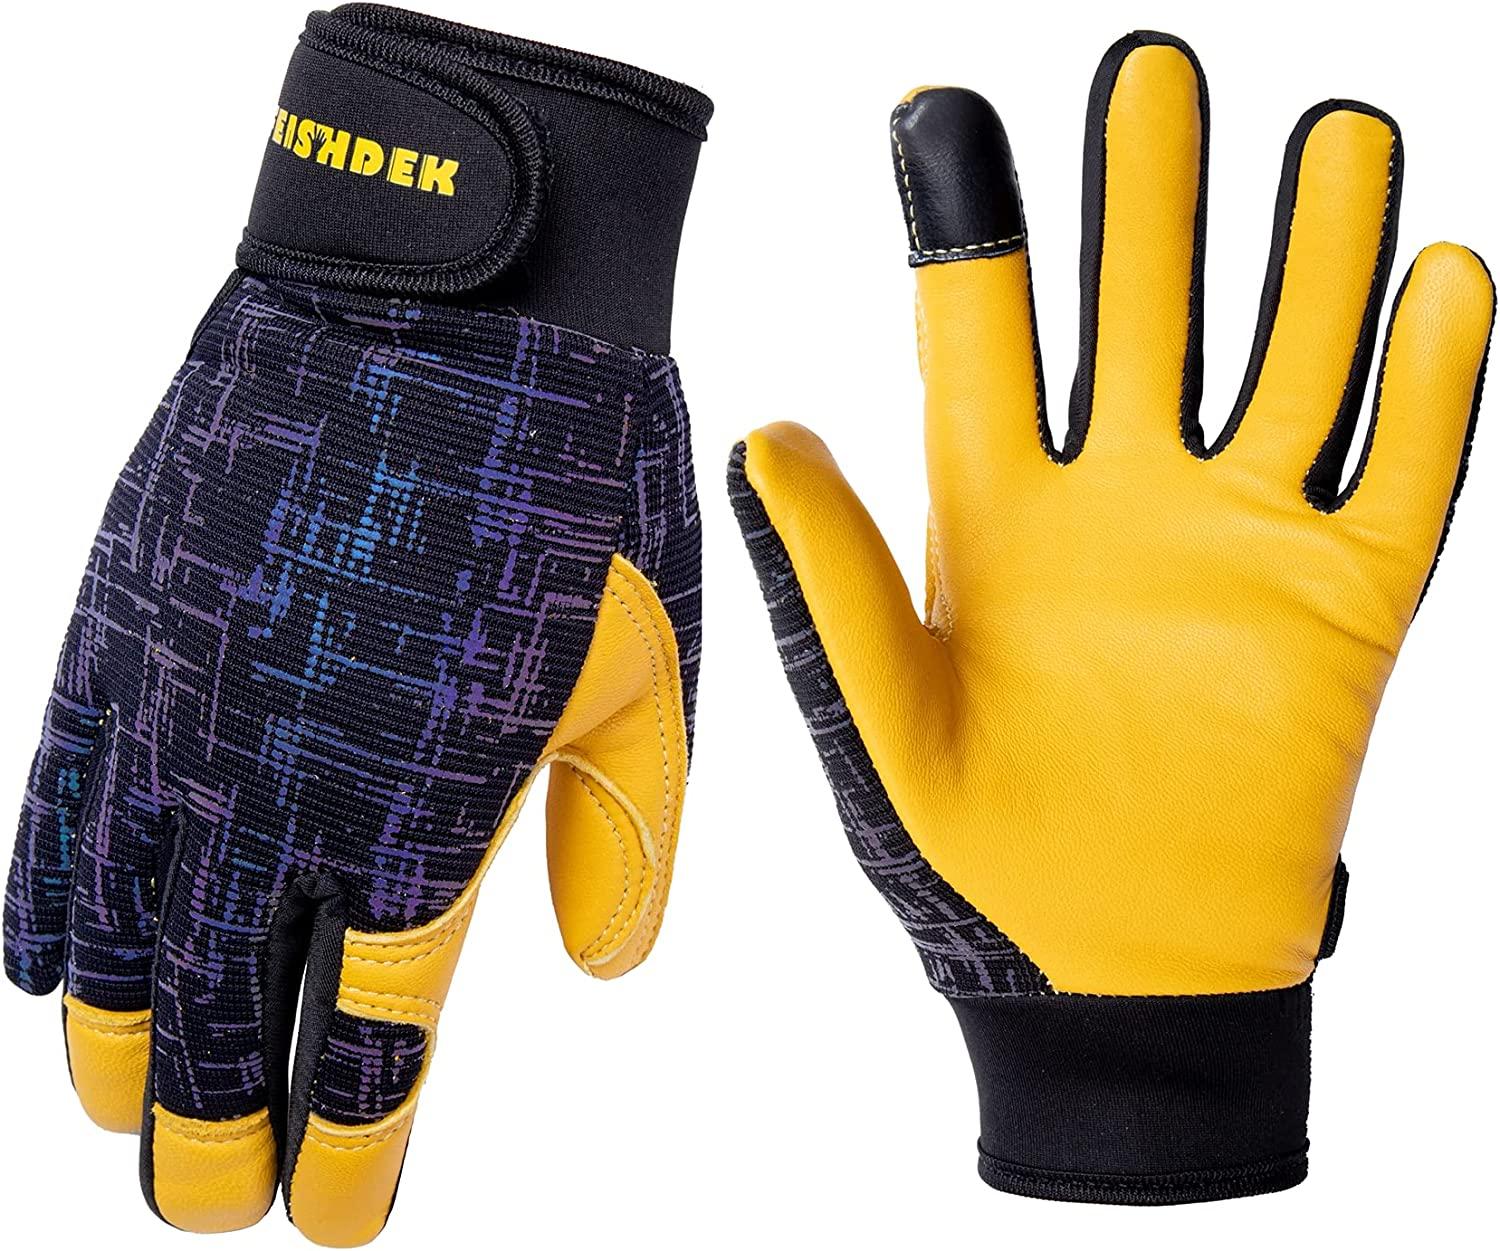 Kids Genuine Leather Work Gloves, Safety Gloves, Touch Screen, Reflective, Breathable Design, for Children Age 3-12